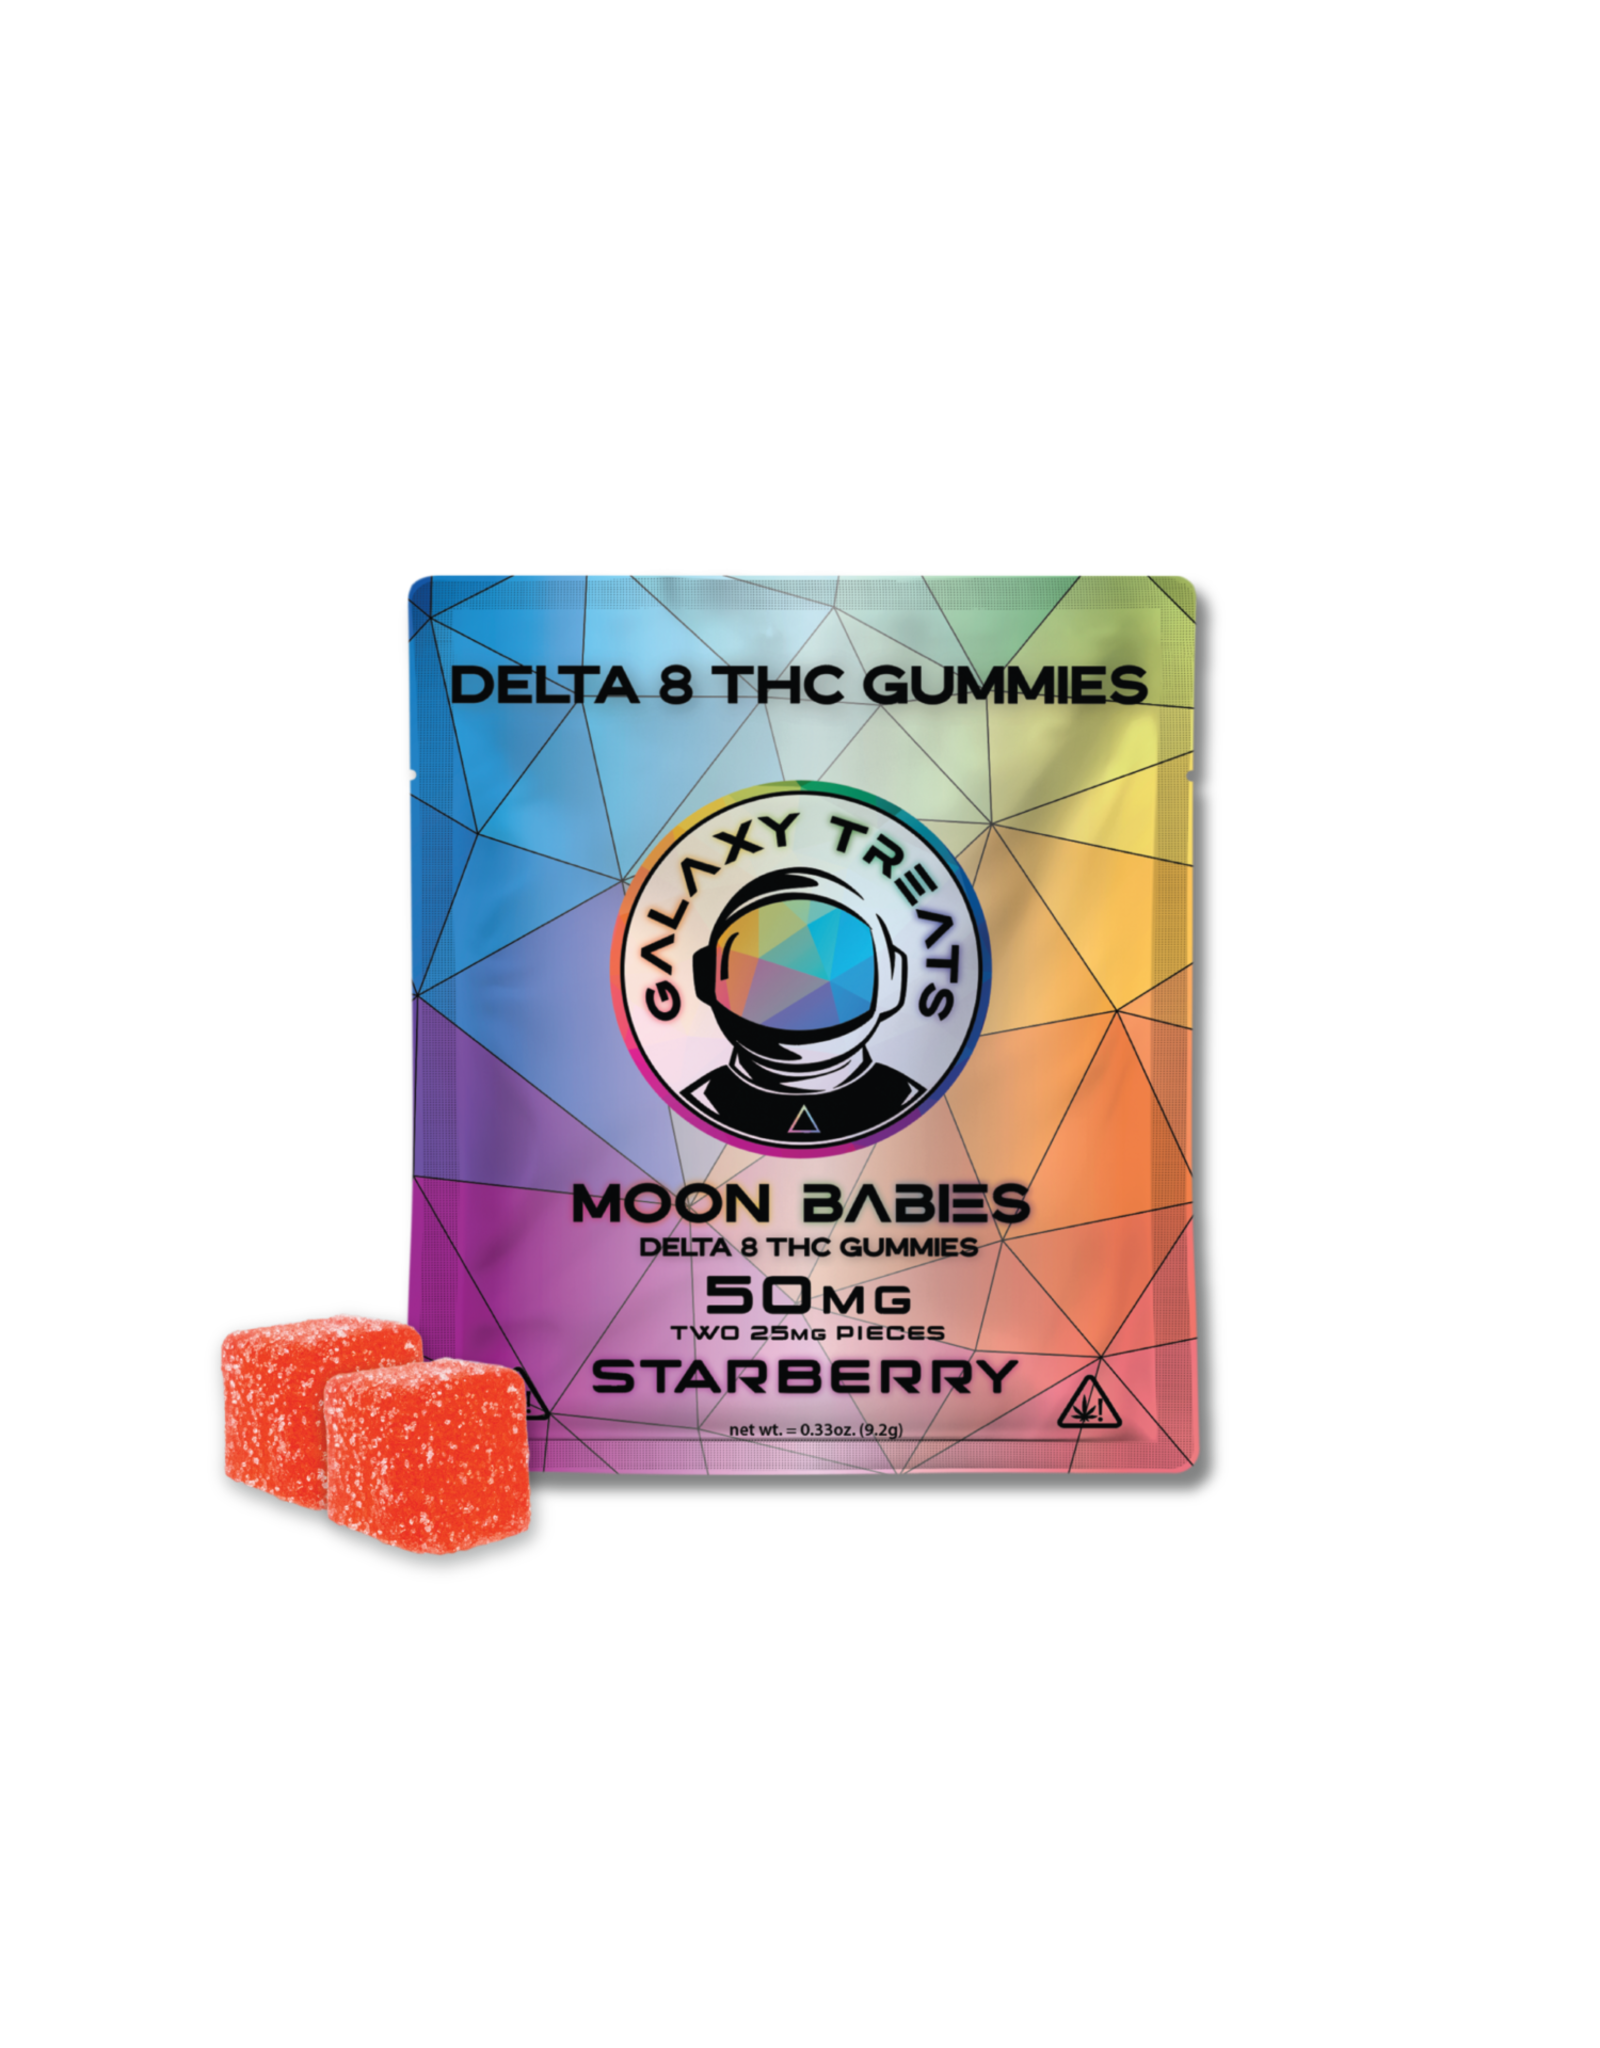 Galaxy treats delta 8 gummies 2ct